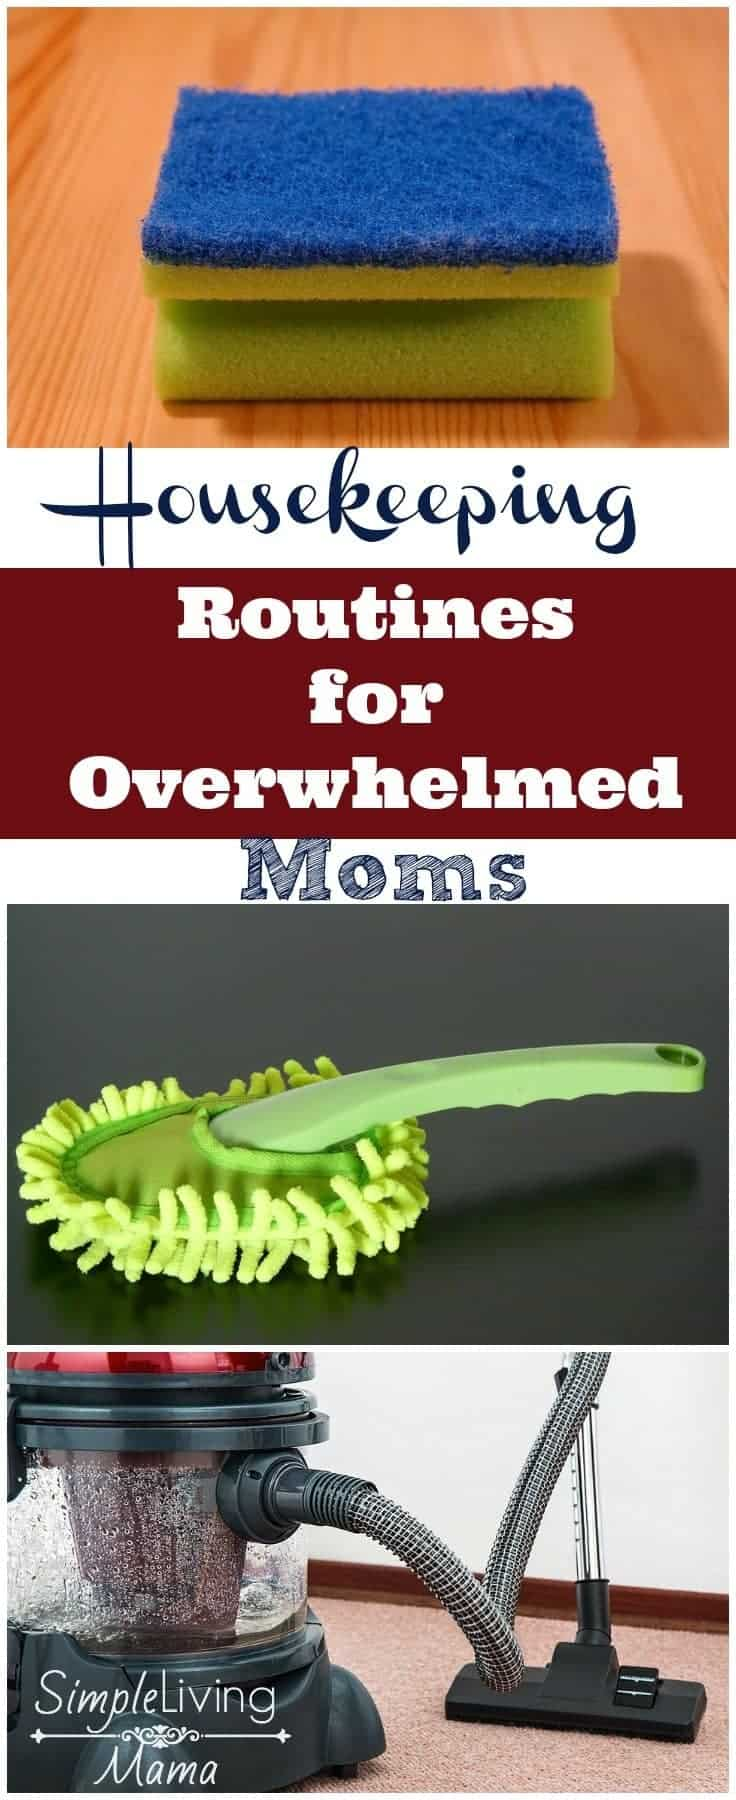 Need a hand getting on top of the houseworking? These housekeeping routines for overwhelmed moms will help you get control of your home!